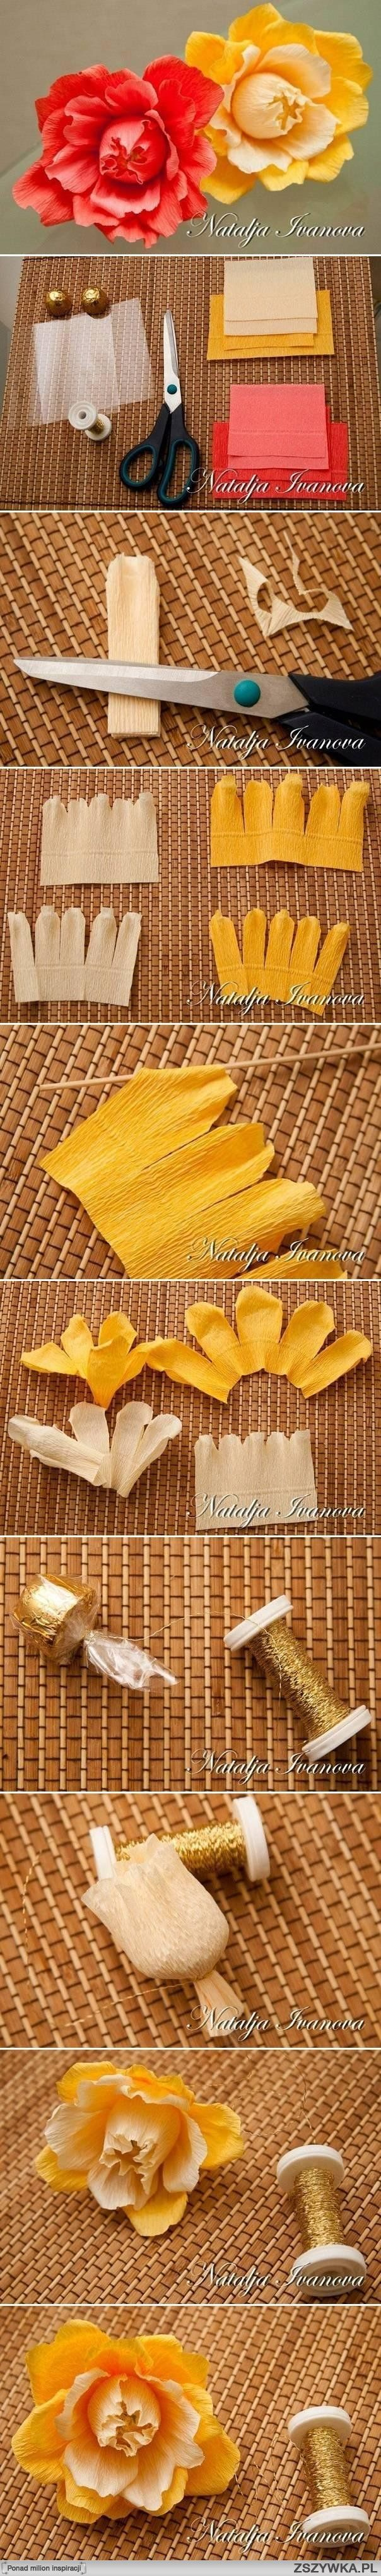 crepe-the-flower-sheet construction